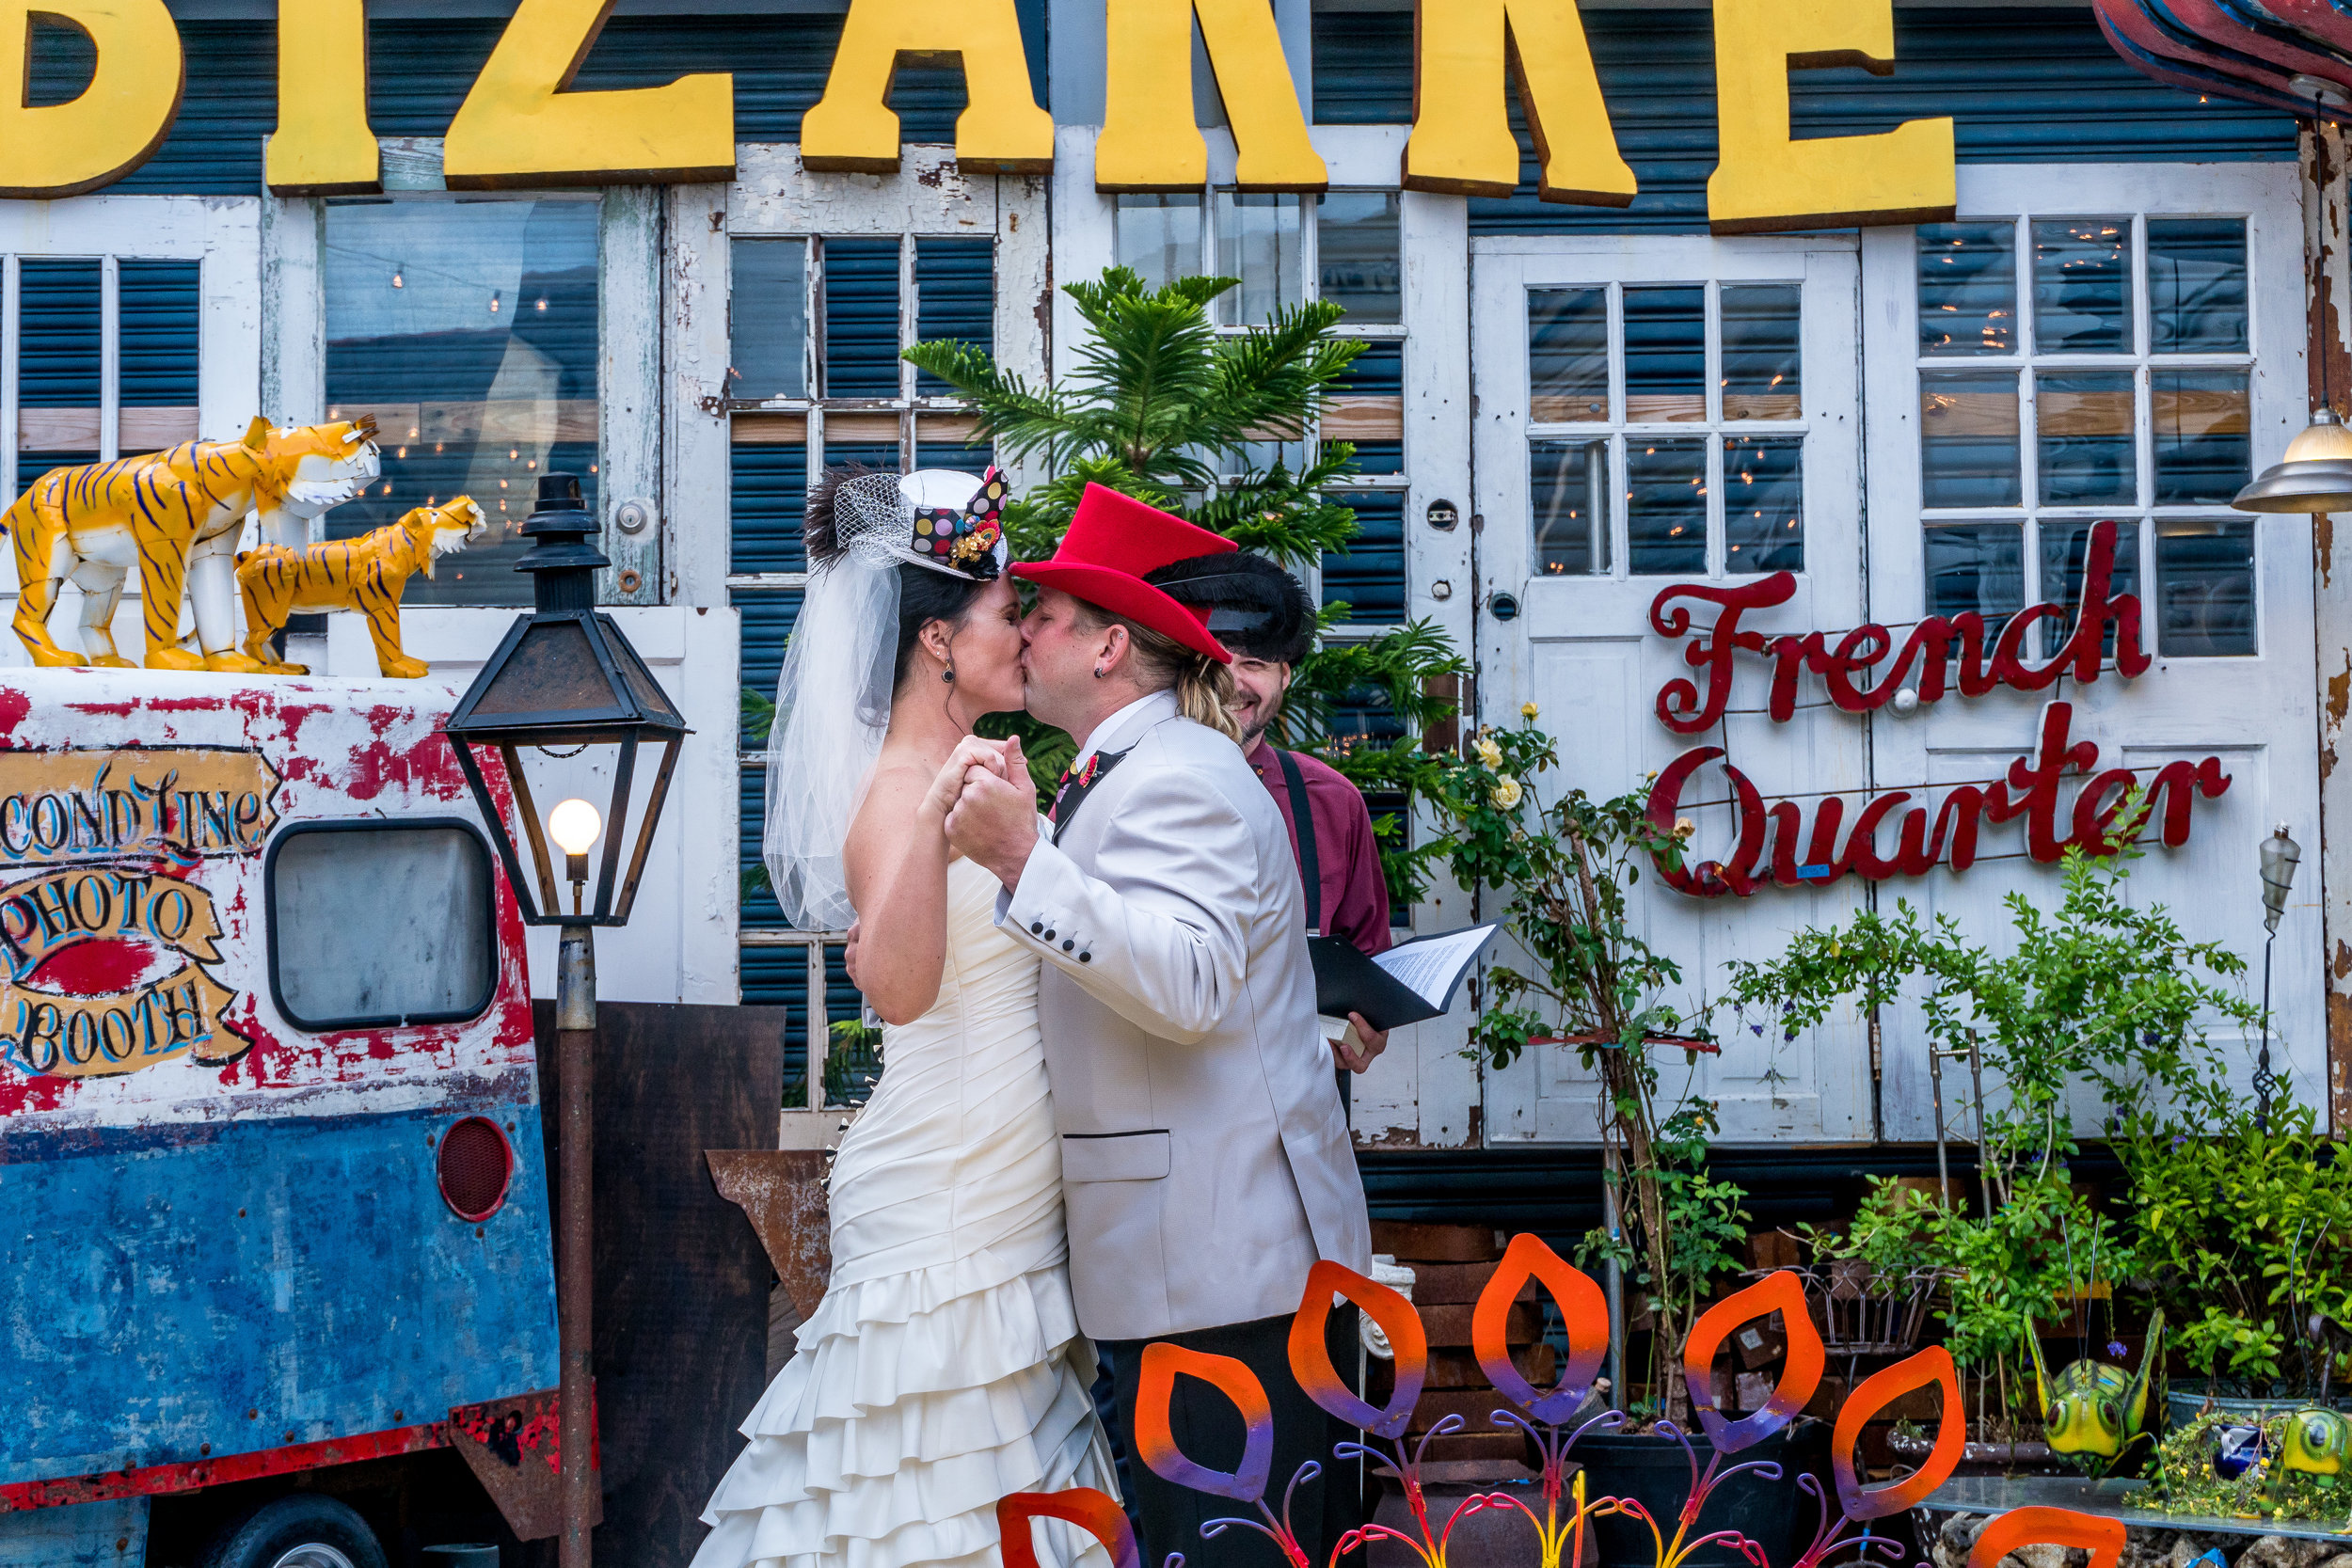 Bride_groom_kiss_ceremony_new_orleans.jpg